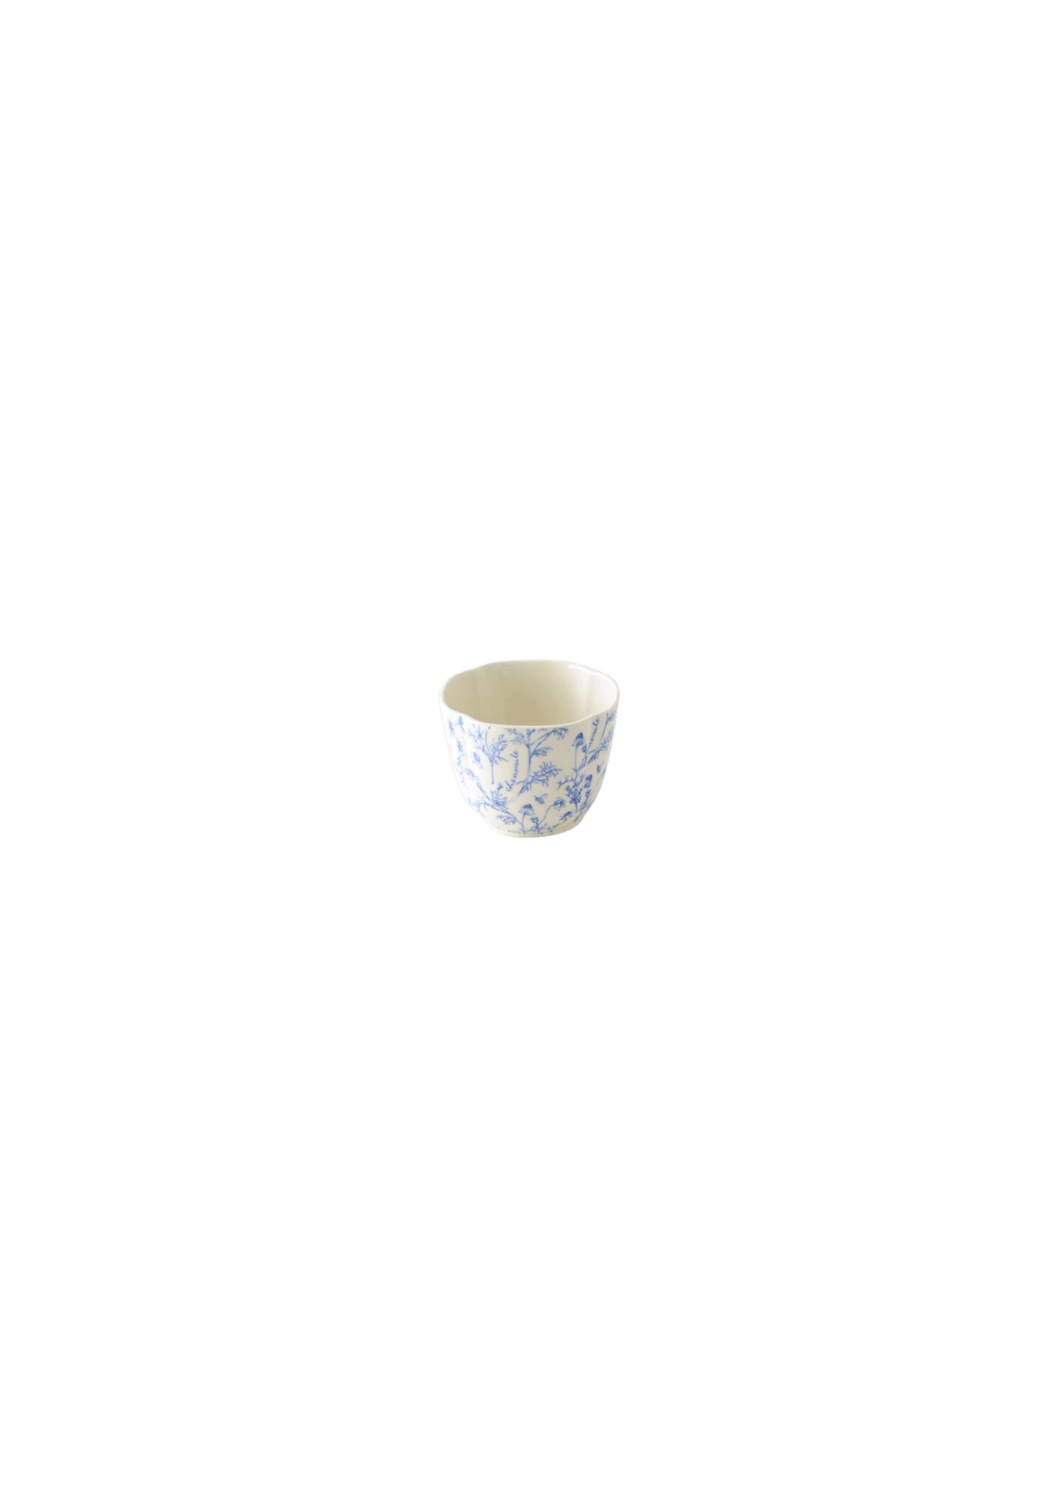 The Coffee Cup